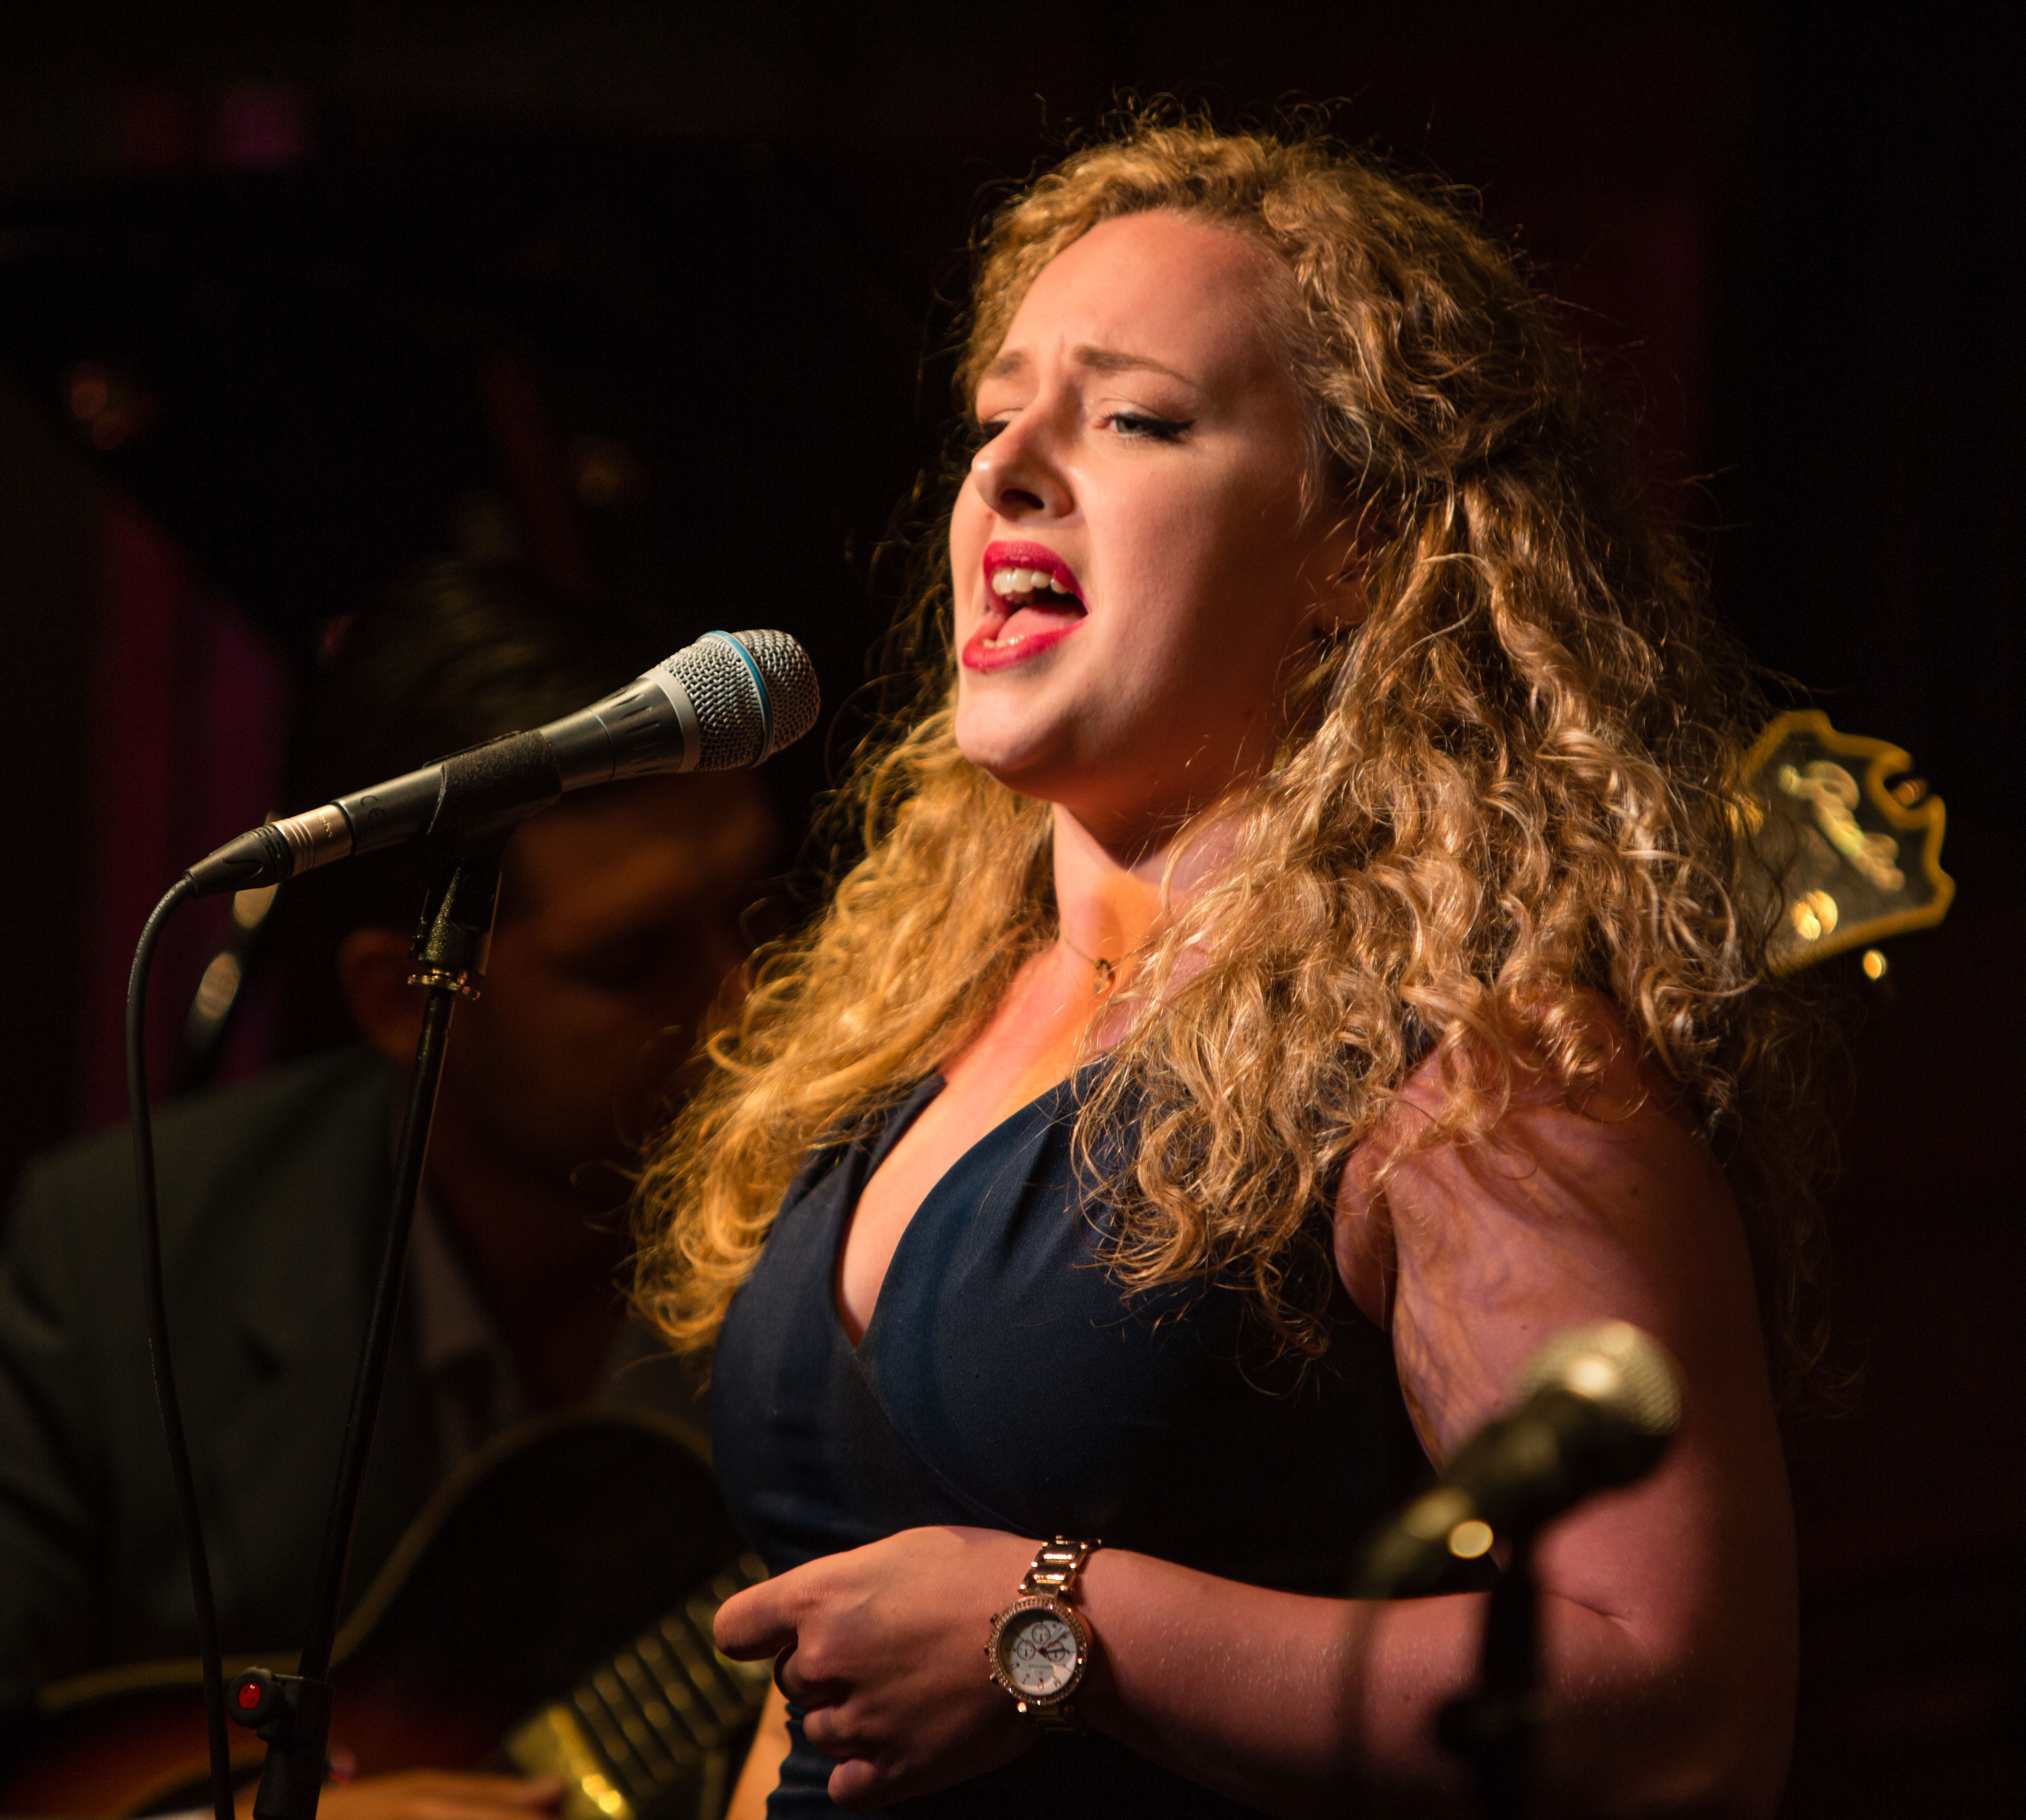 Louise Balkwill at 606 Club - Photography by Trevor Clifford